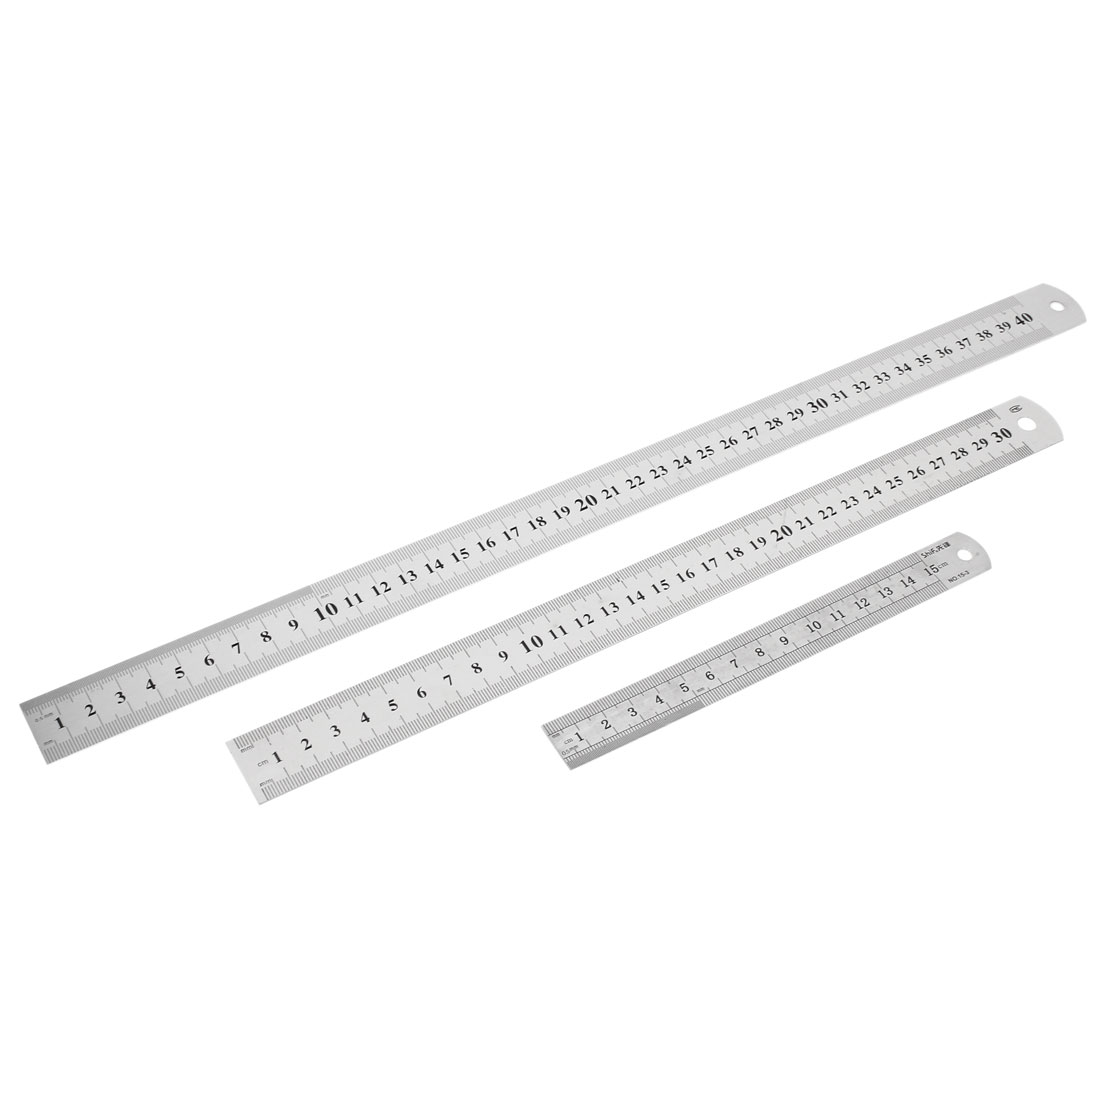 3 in 1 15cm 30cm 40cm Double Side Students Metric Straight Ruler Silver Tone